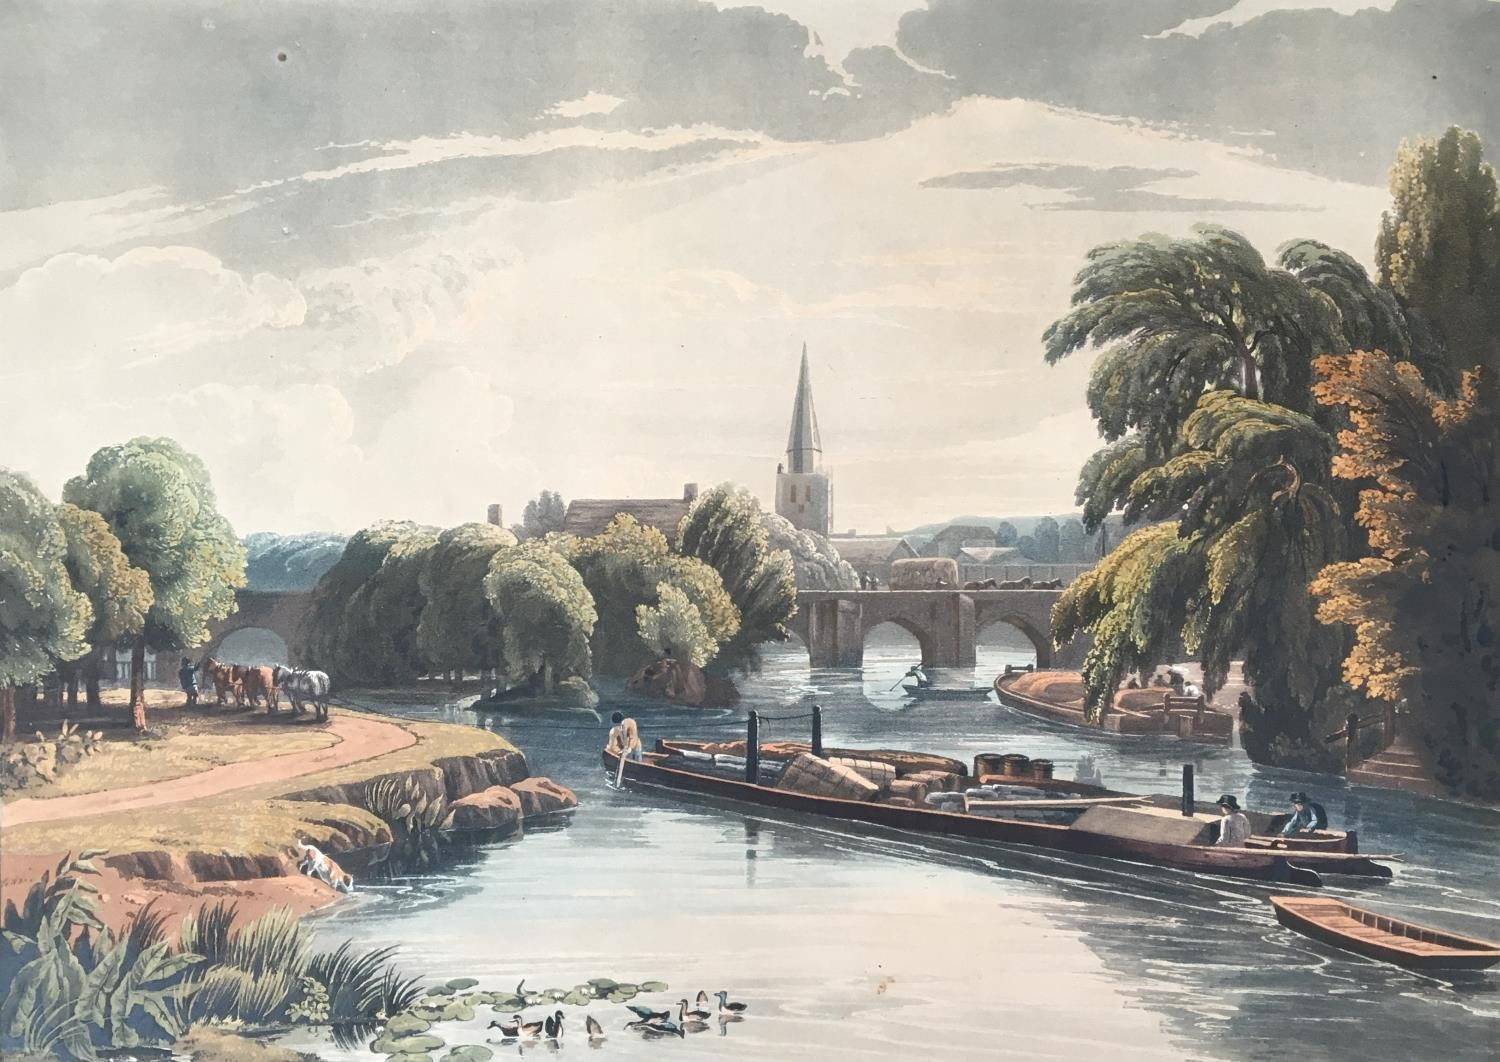 A collection of ten 19th century chromolithographs after William Havell, 'An Island On The Thames - Image 5 of 10